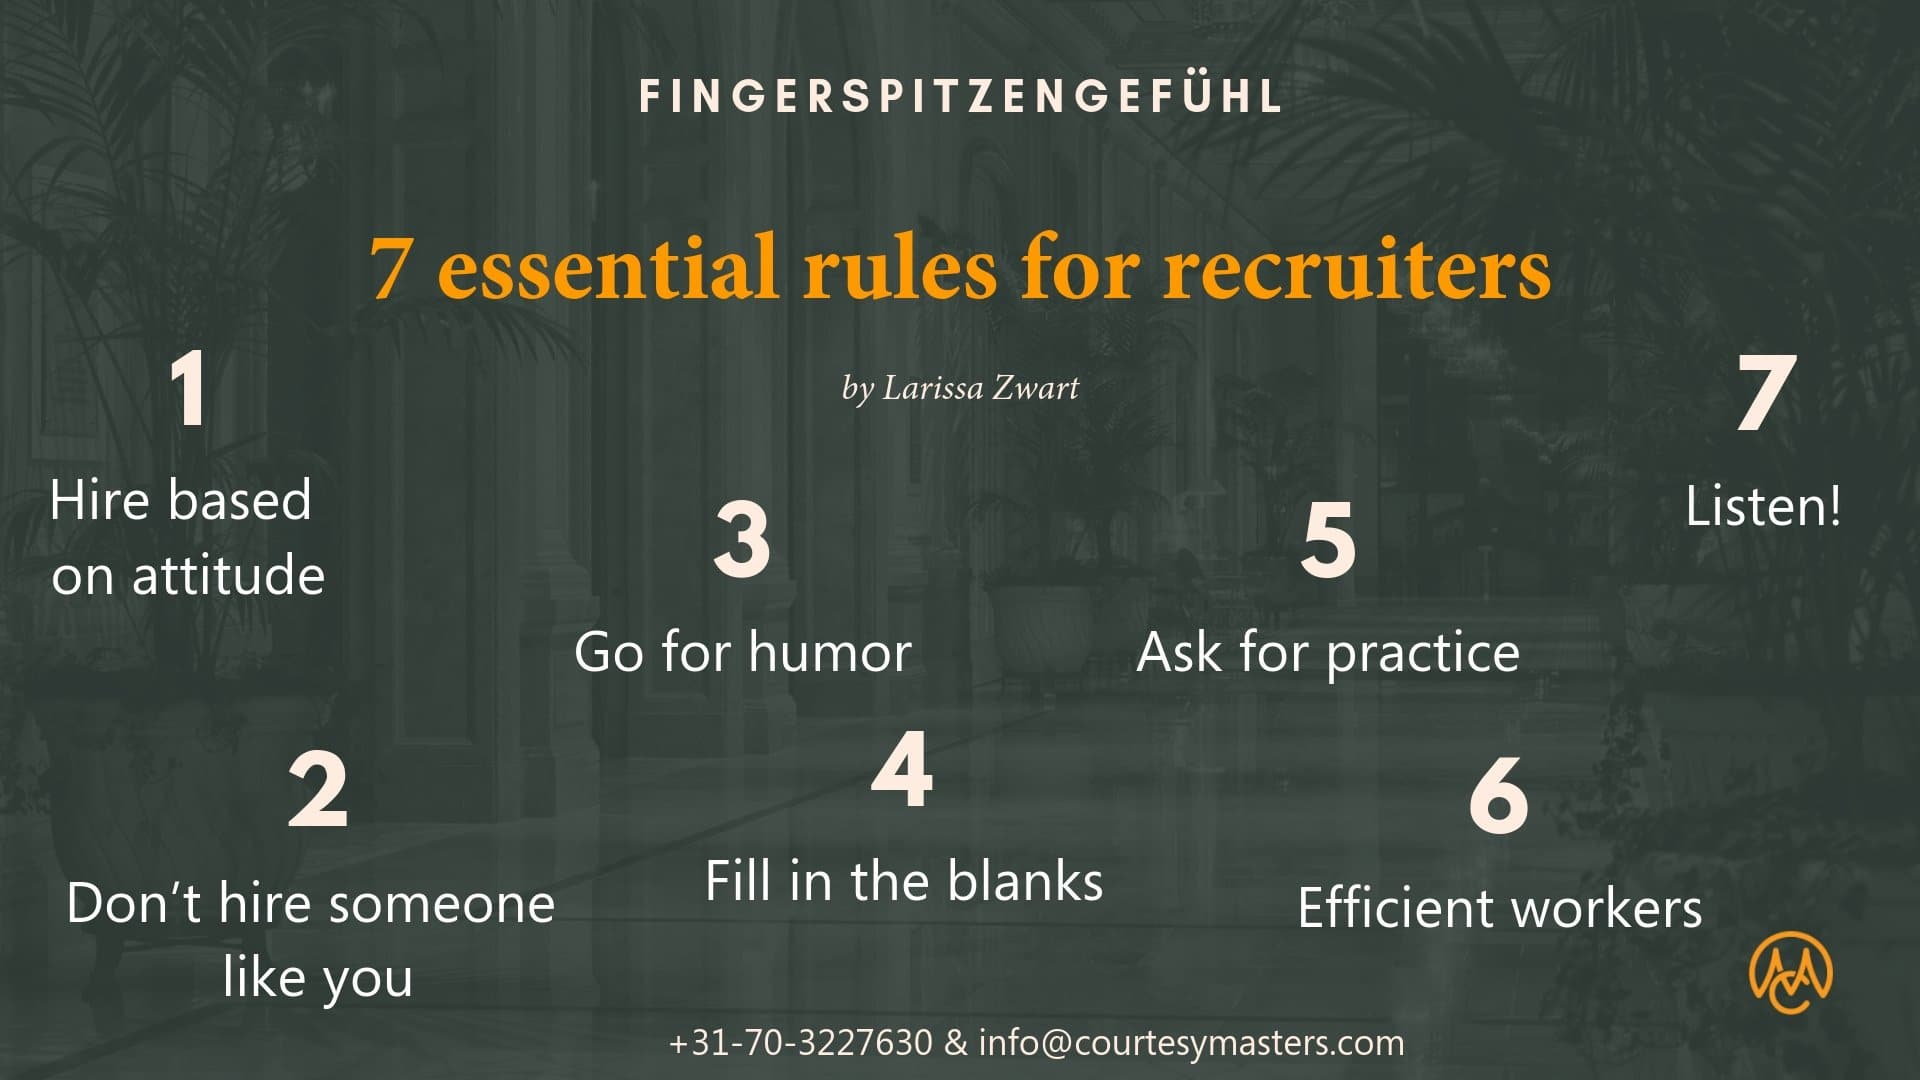 Rules for recruiters in hospitality